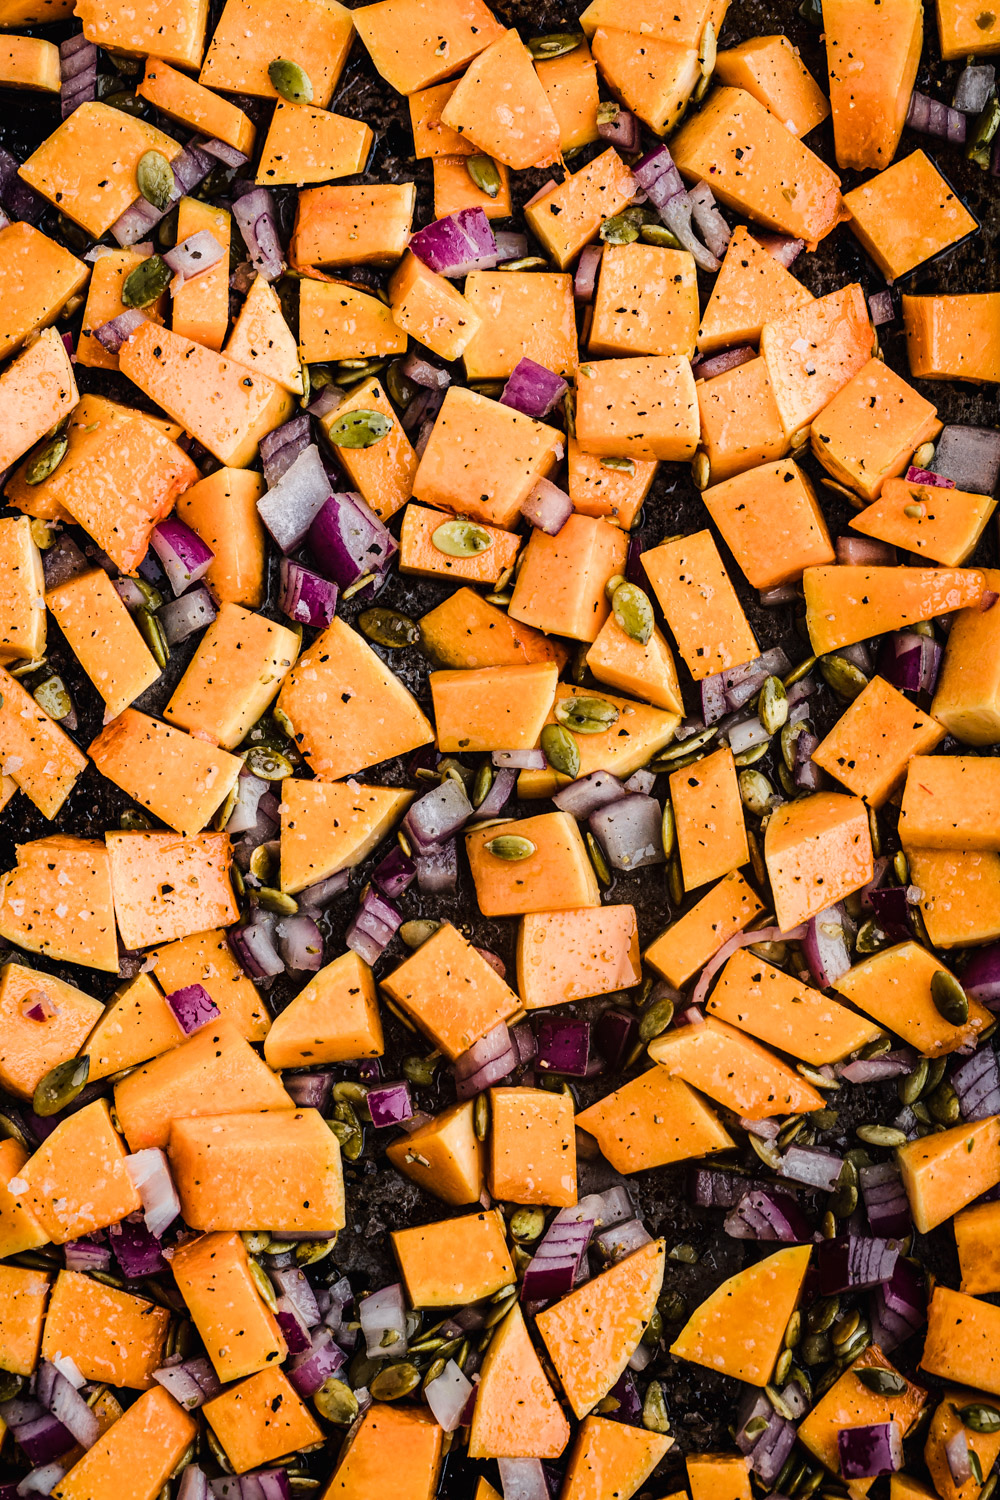 Cubed orange sweet potatoes with chopped onions and pepitas on a baking sheet, ready to be roasted.